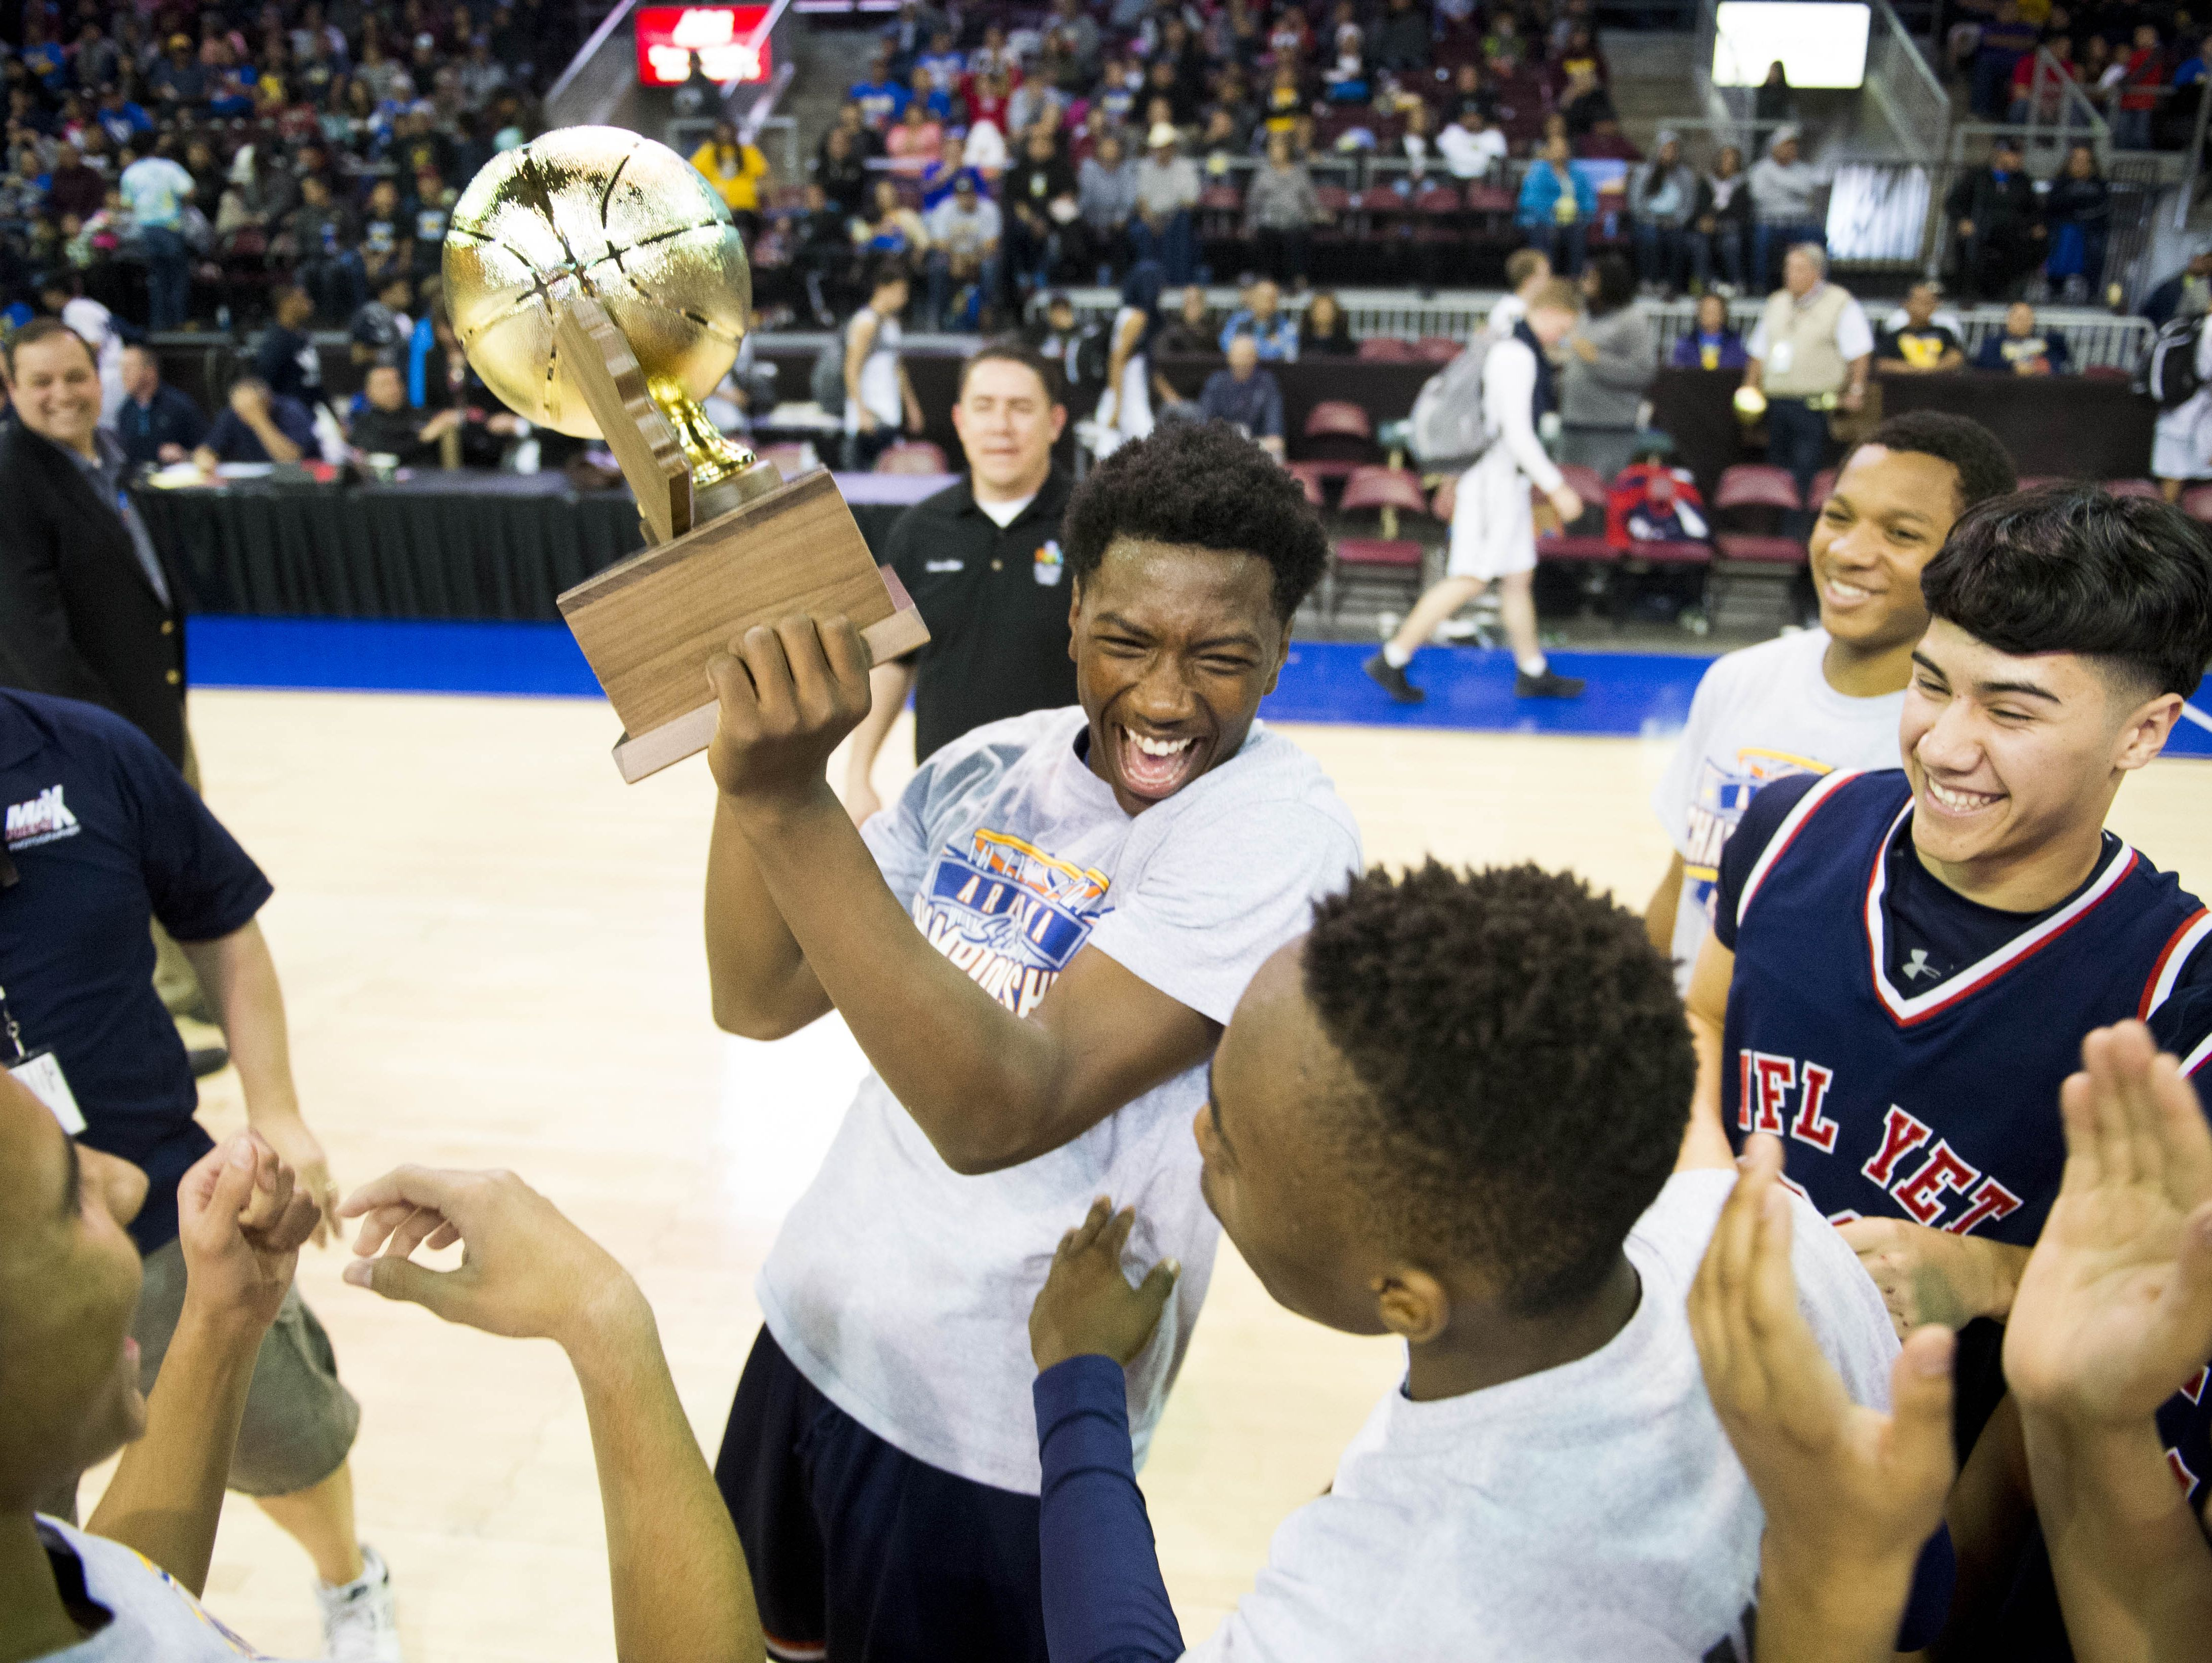 NFL YET's basketball team celebrates on the court after winning the 1A boys state championship game at the Prescott Valley Event Center in Prescott Valley on Saturday, Feb. 25, 2017.